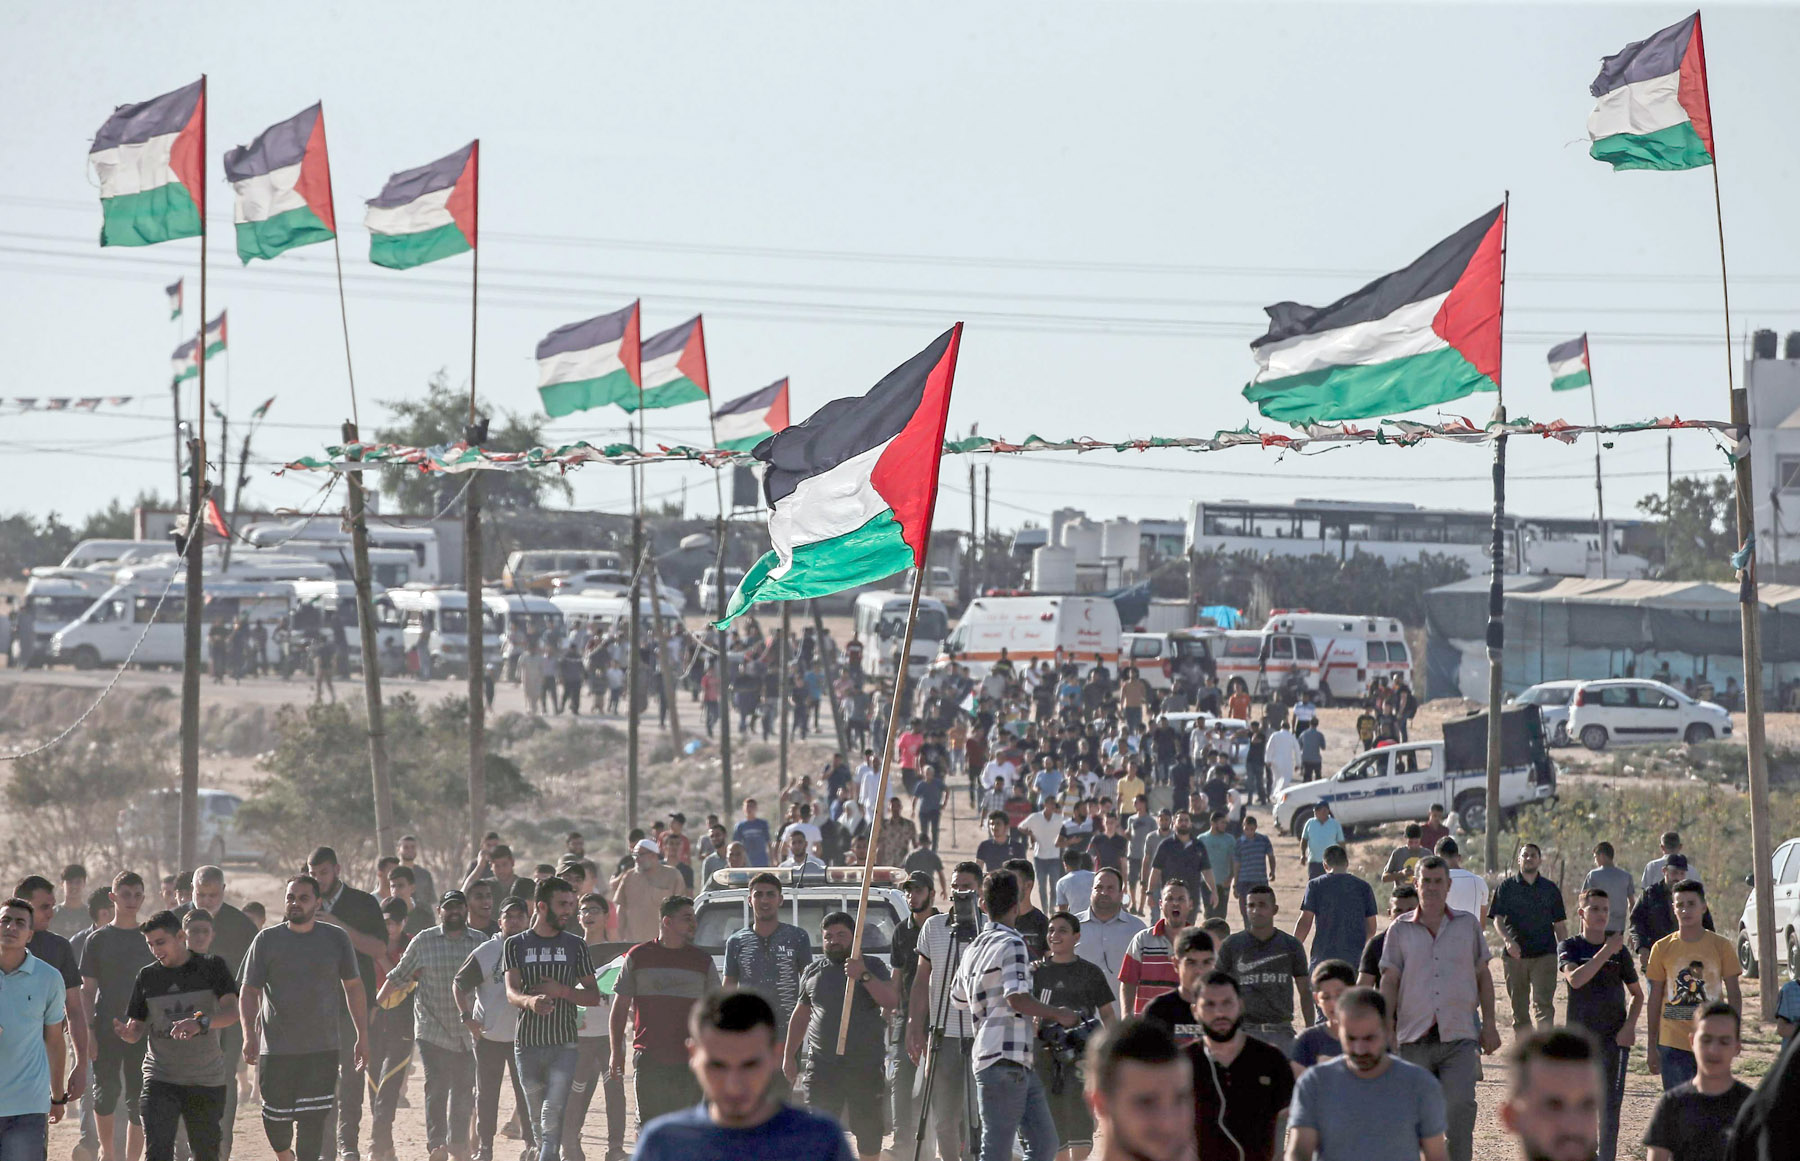 Palestinians demonstrate near the fence along the border with Israel in the eastern Gaza Strip, August 16. (AFP)